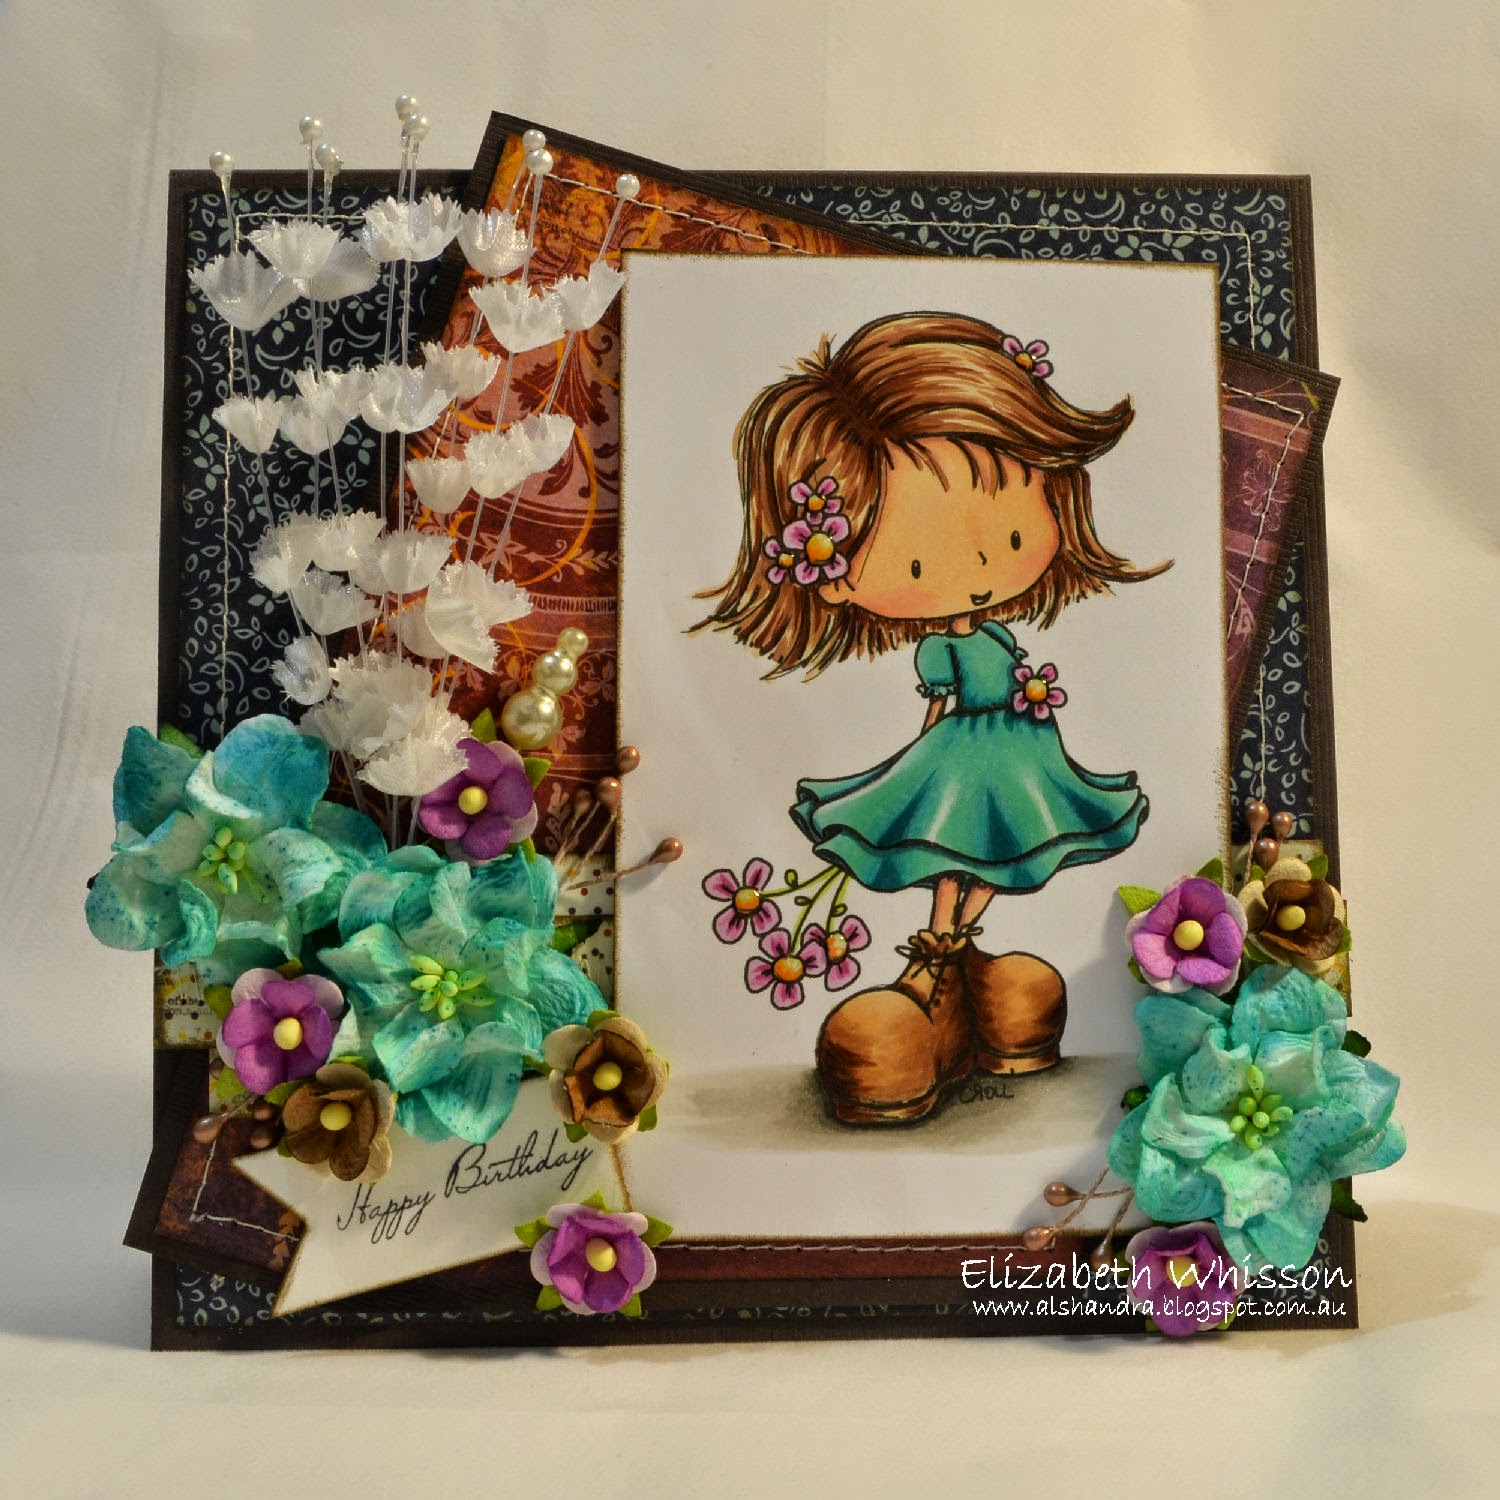 Elizabeth Whisson, handmade card, Tiddly Inks, Celebrate, AnnaBelle Stamps, Squared Posies, ODBD Pennants Dies, Live and Love Crafts, Bo Bunny, Bazzill, Copics, X-Press It blending card, Copic airbrush, ABS-1N, flowers